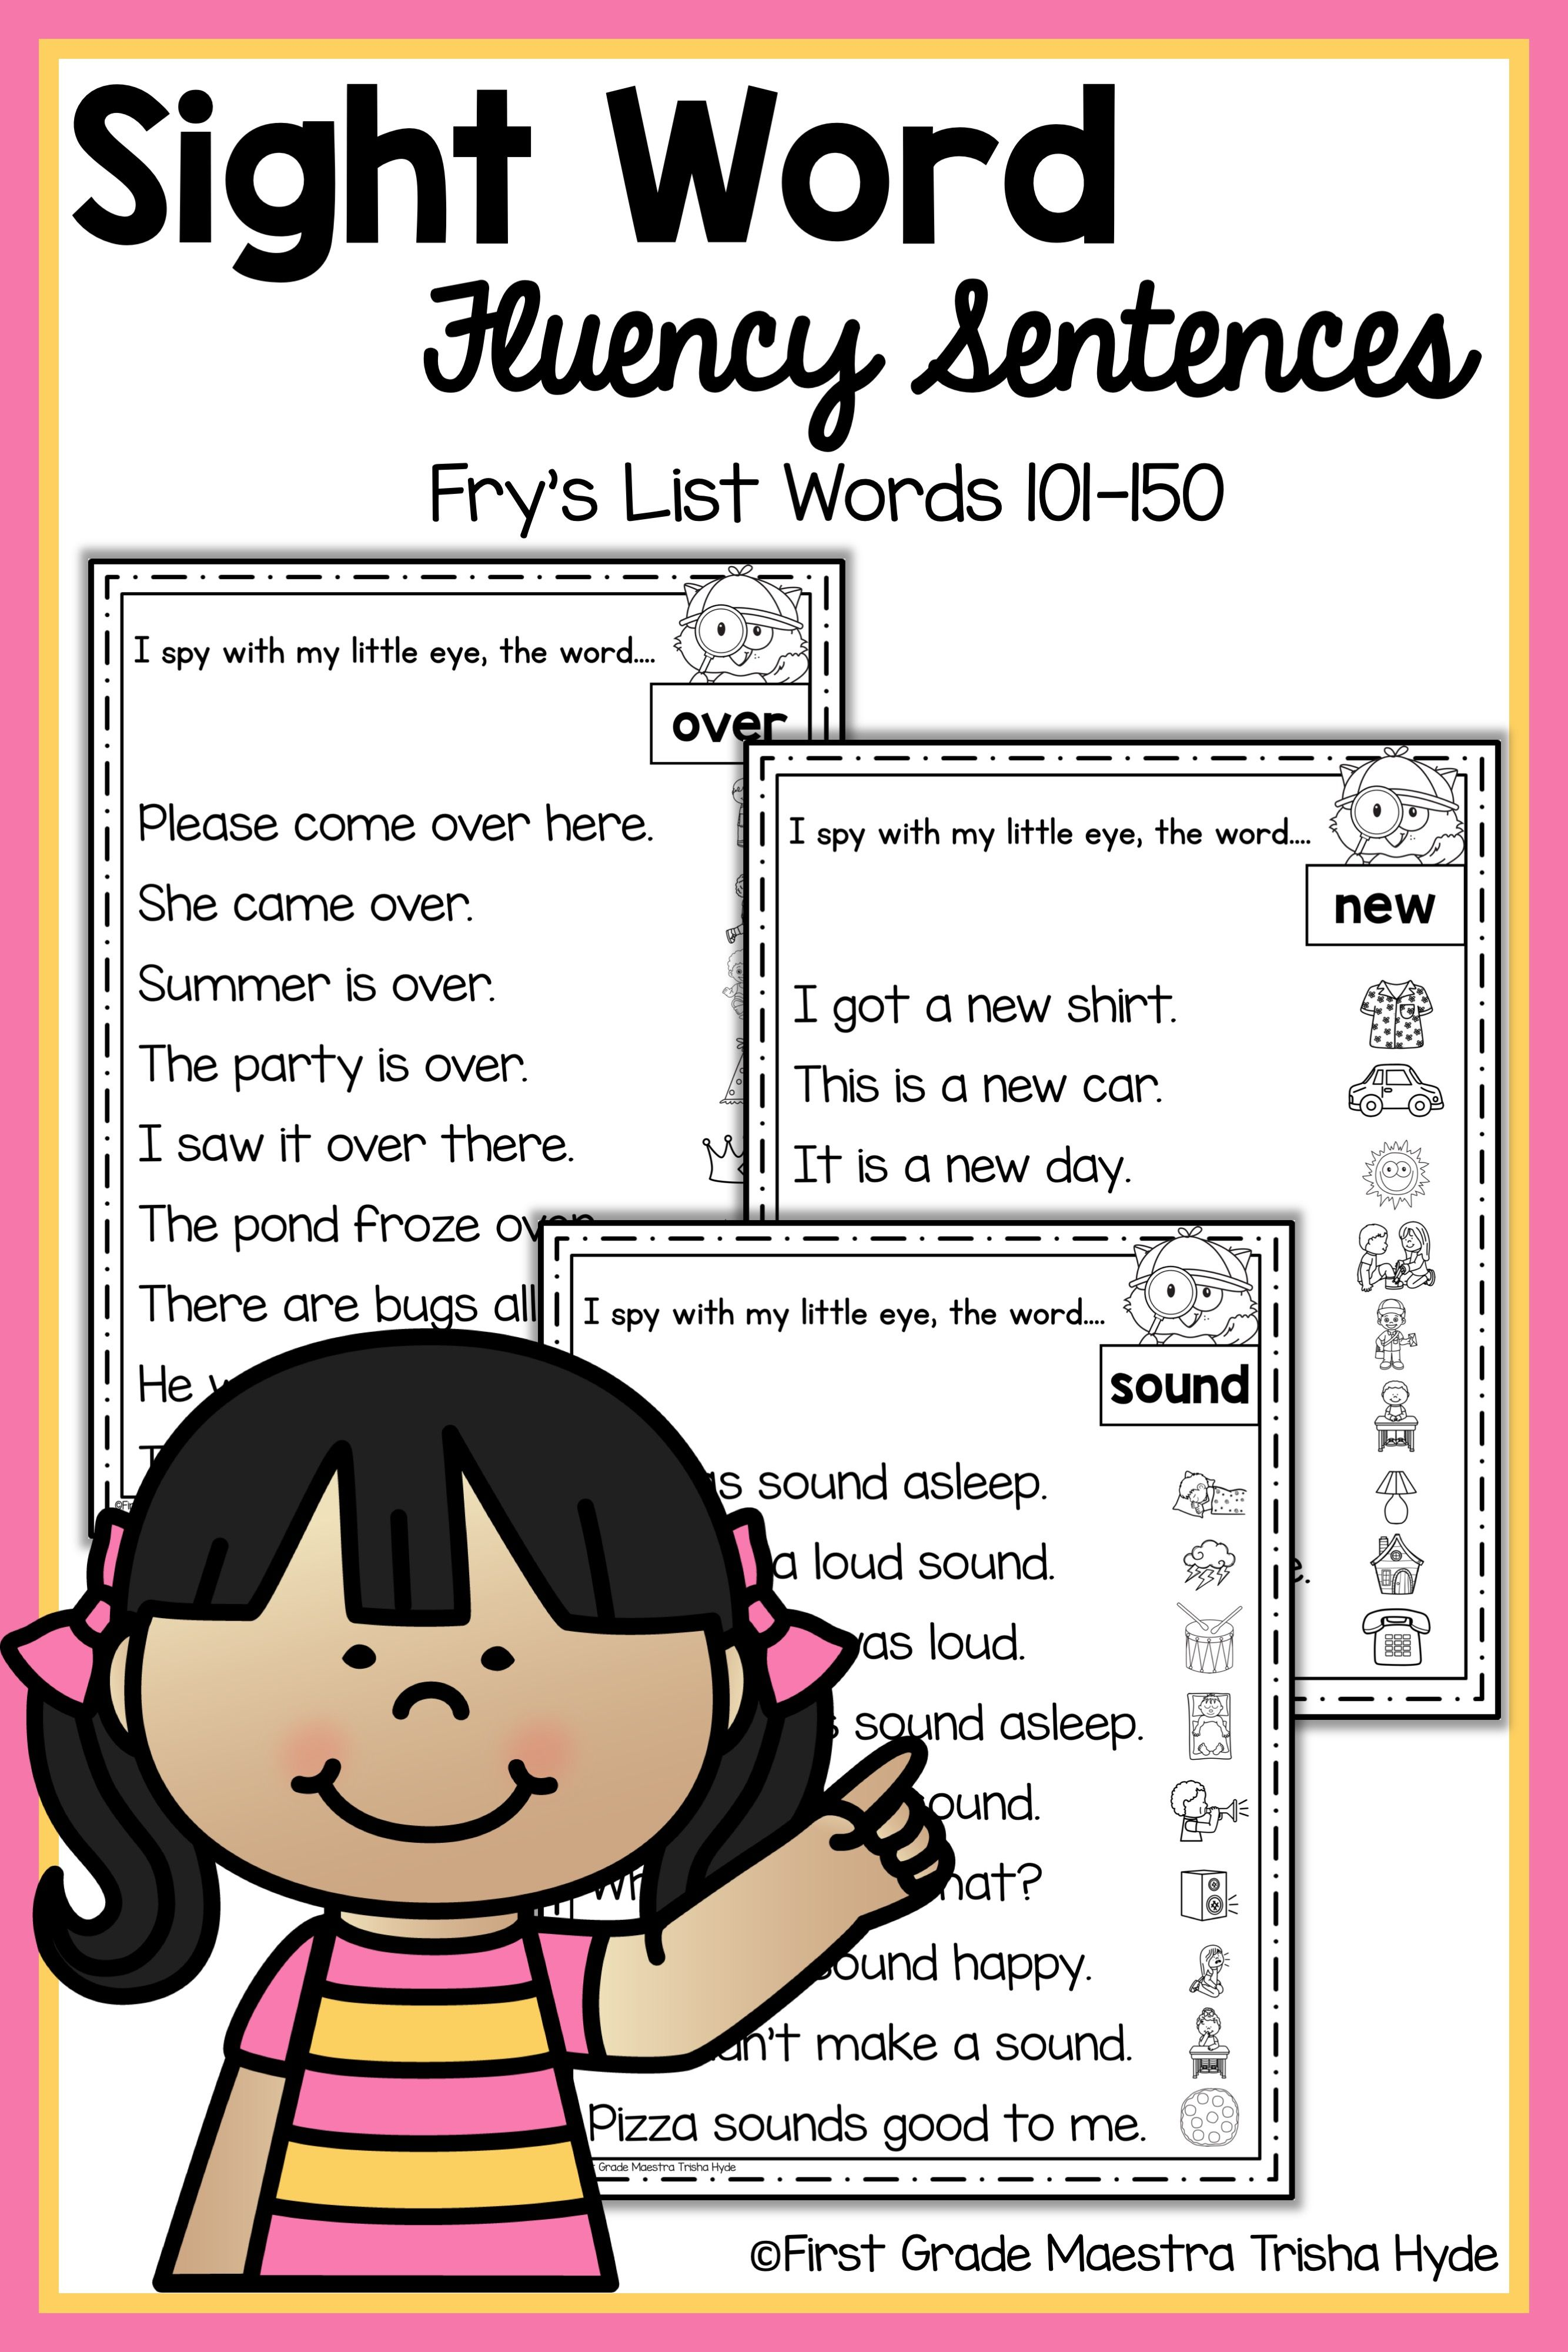 Sight Word Fluency Sentences Frys Words 101 To 150 With